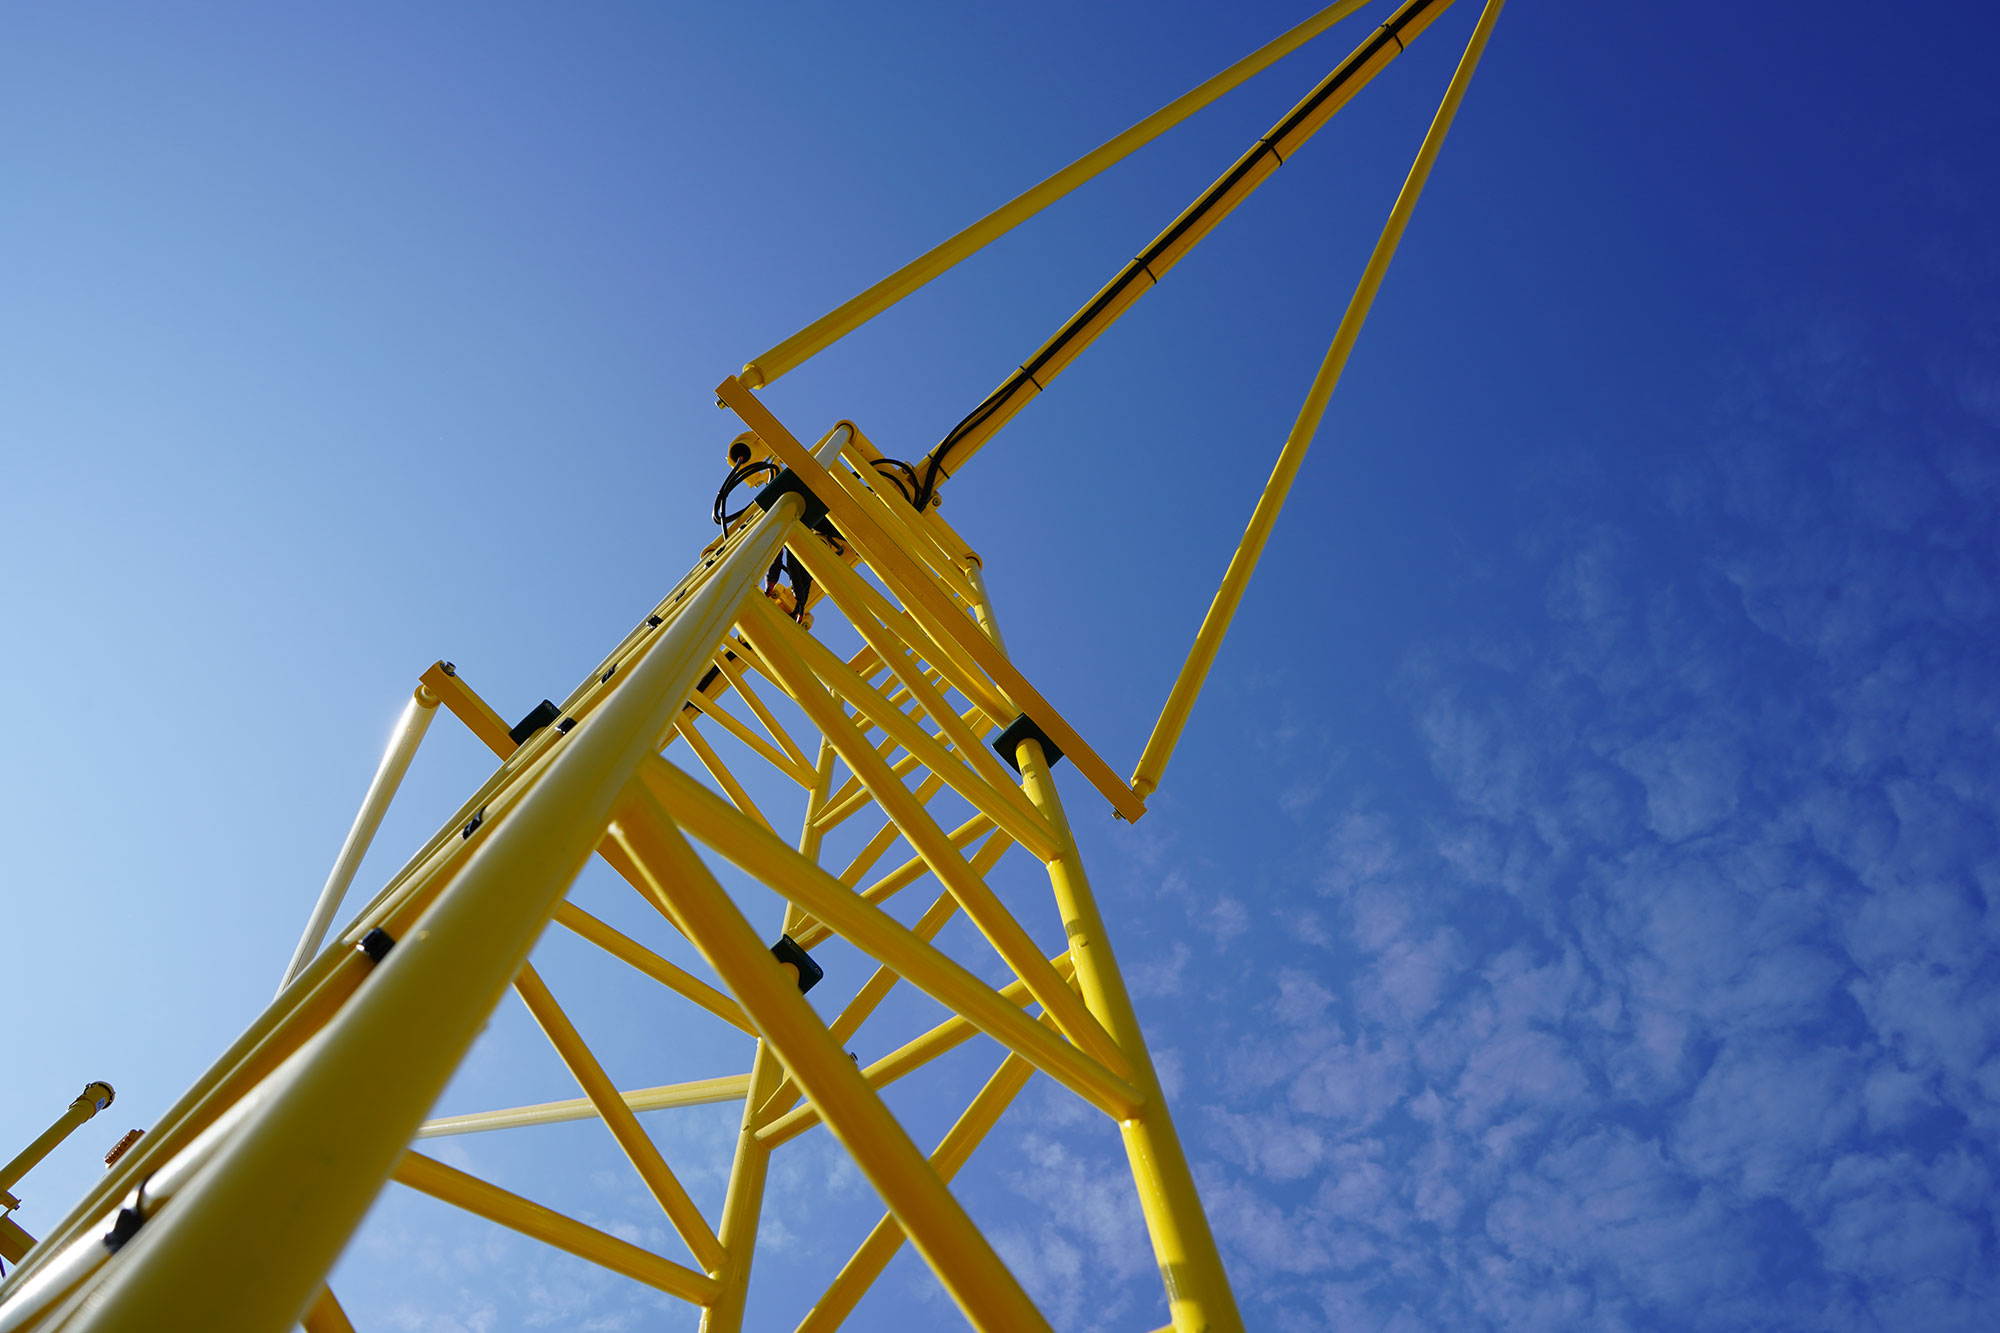 photo of crane against the sky